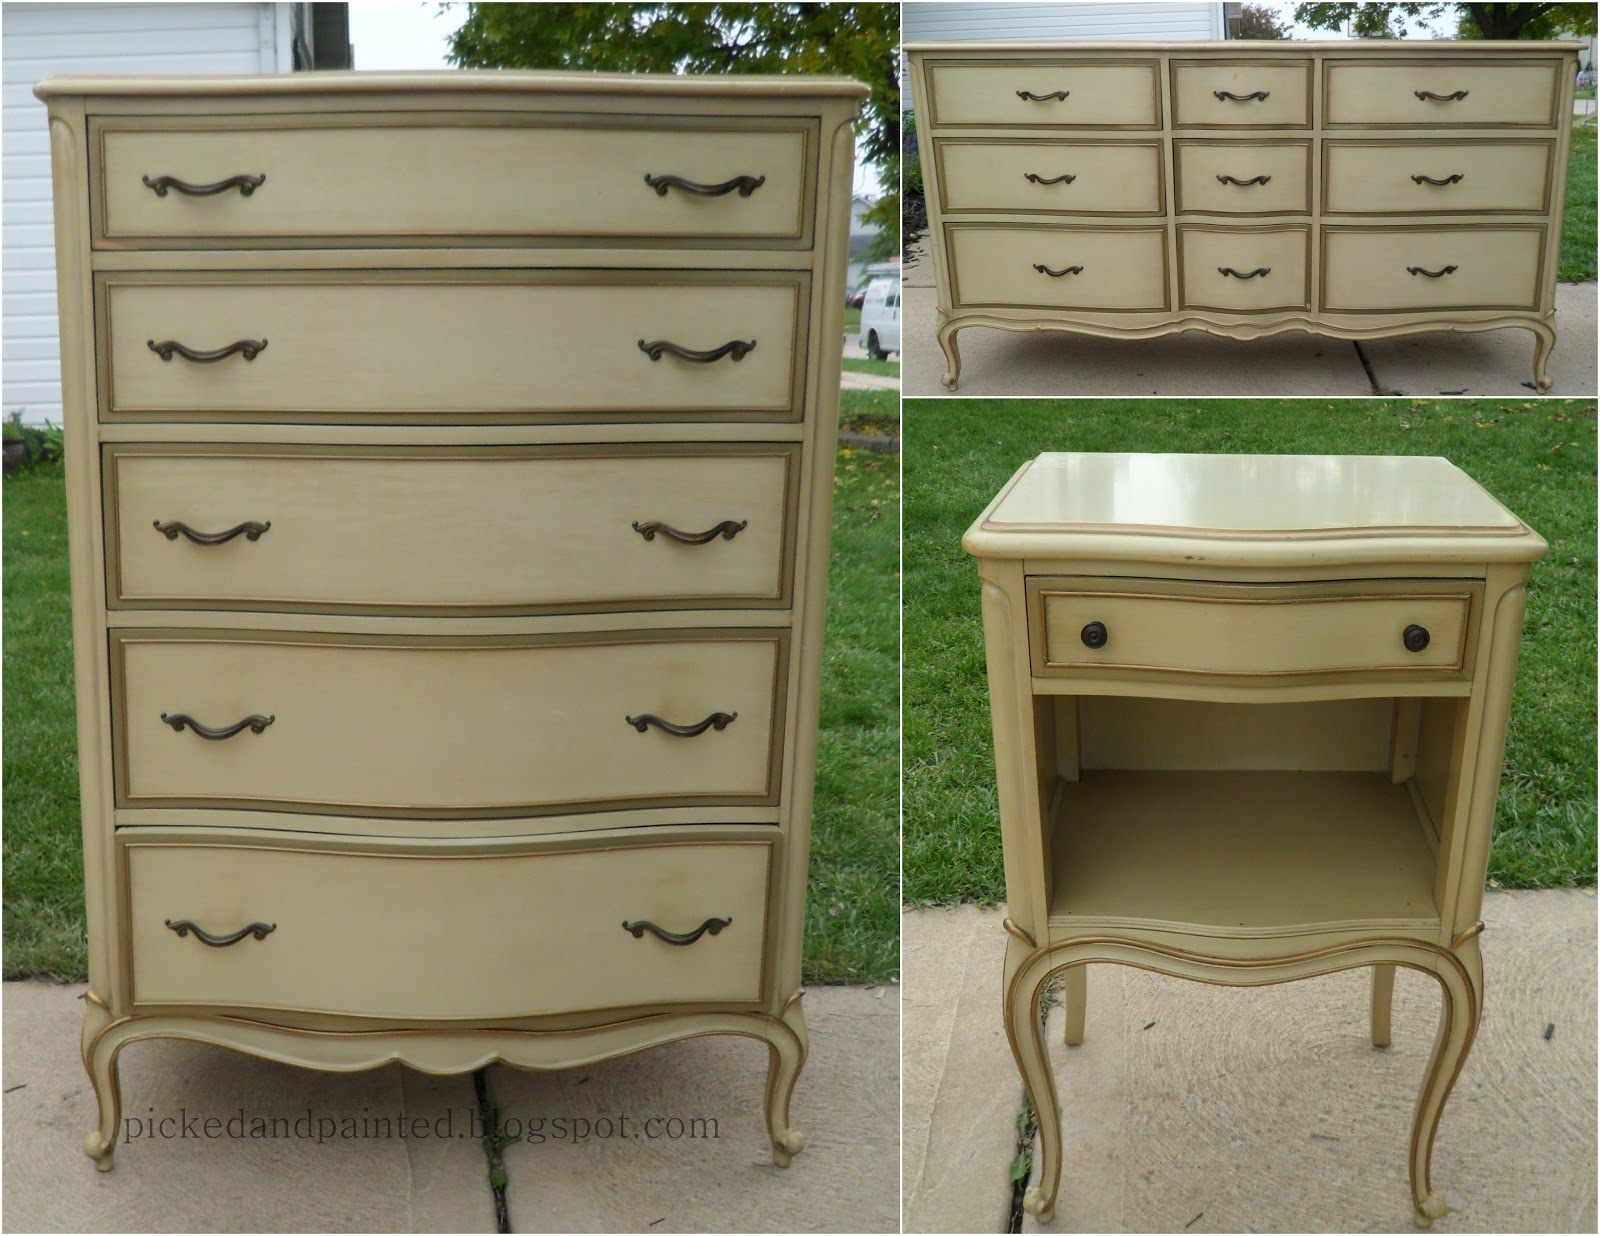 Picked & Painted: French Provincial Dresser Set